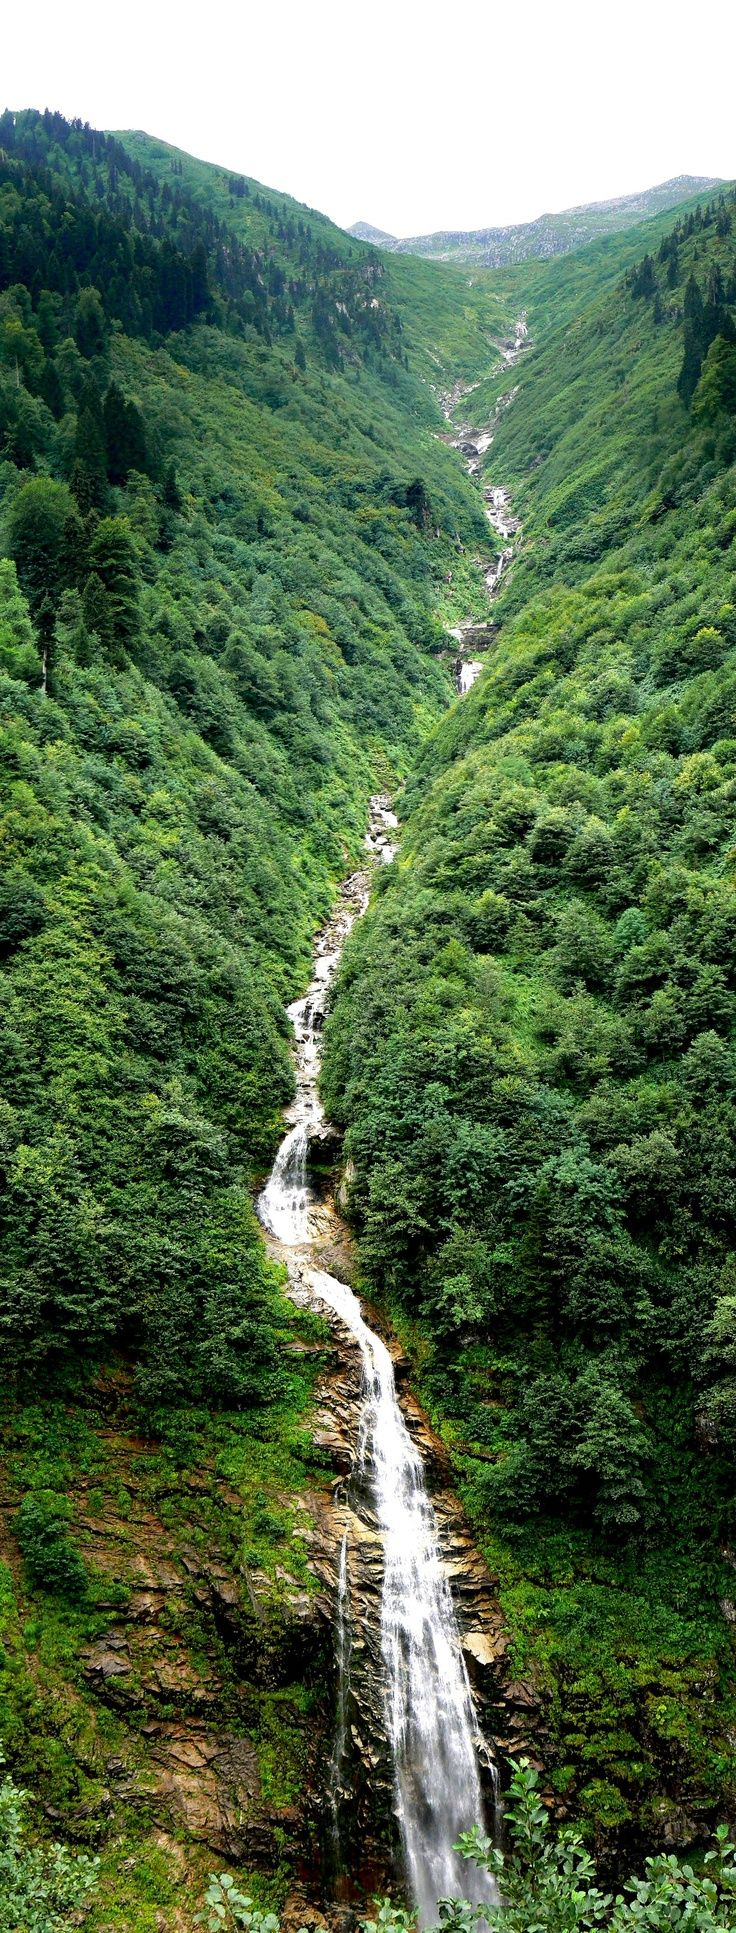 Waterfall at Ayder Yaylası – Rize,Turkey